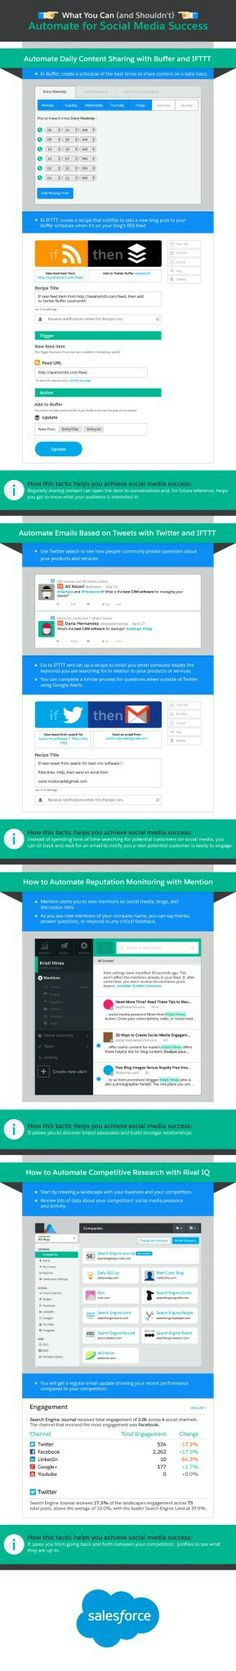 What you should and shouldn't automate for marketing success #Marketing #automation